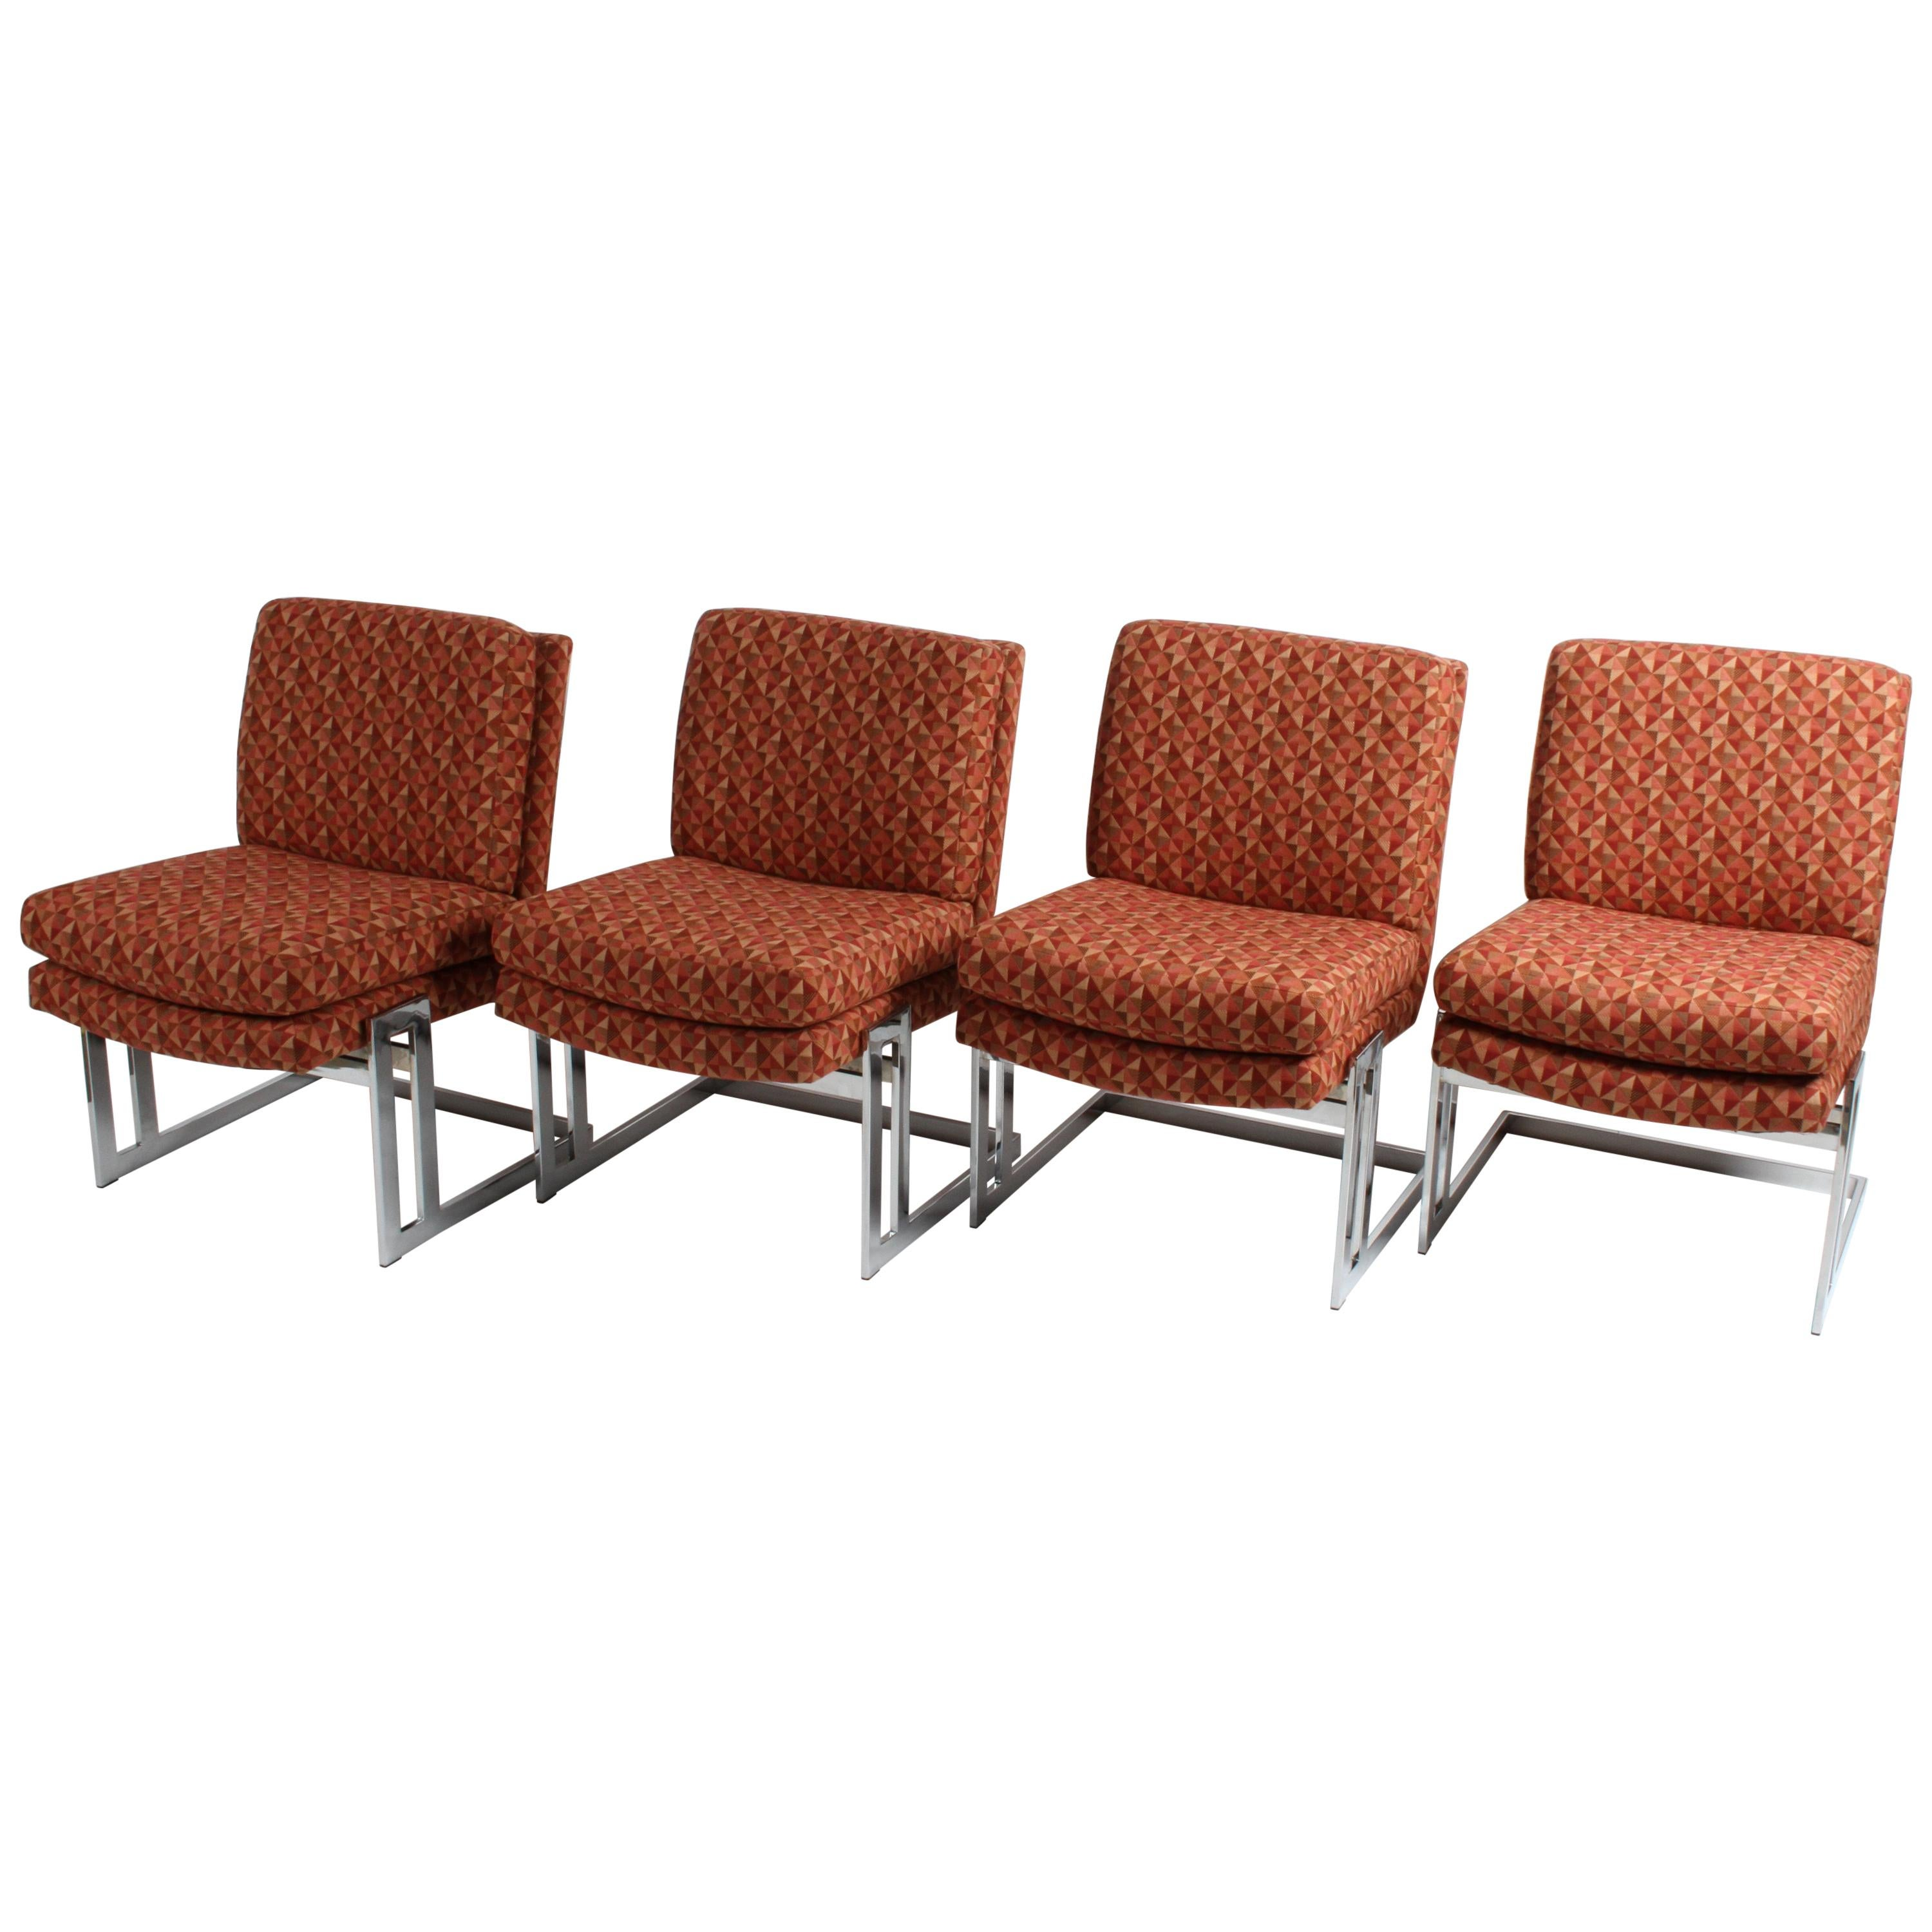 Set of 4 Milo Baughman for Thayer-Coggin Cantilever Dining or Game Table Chairs